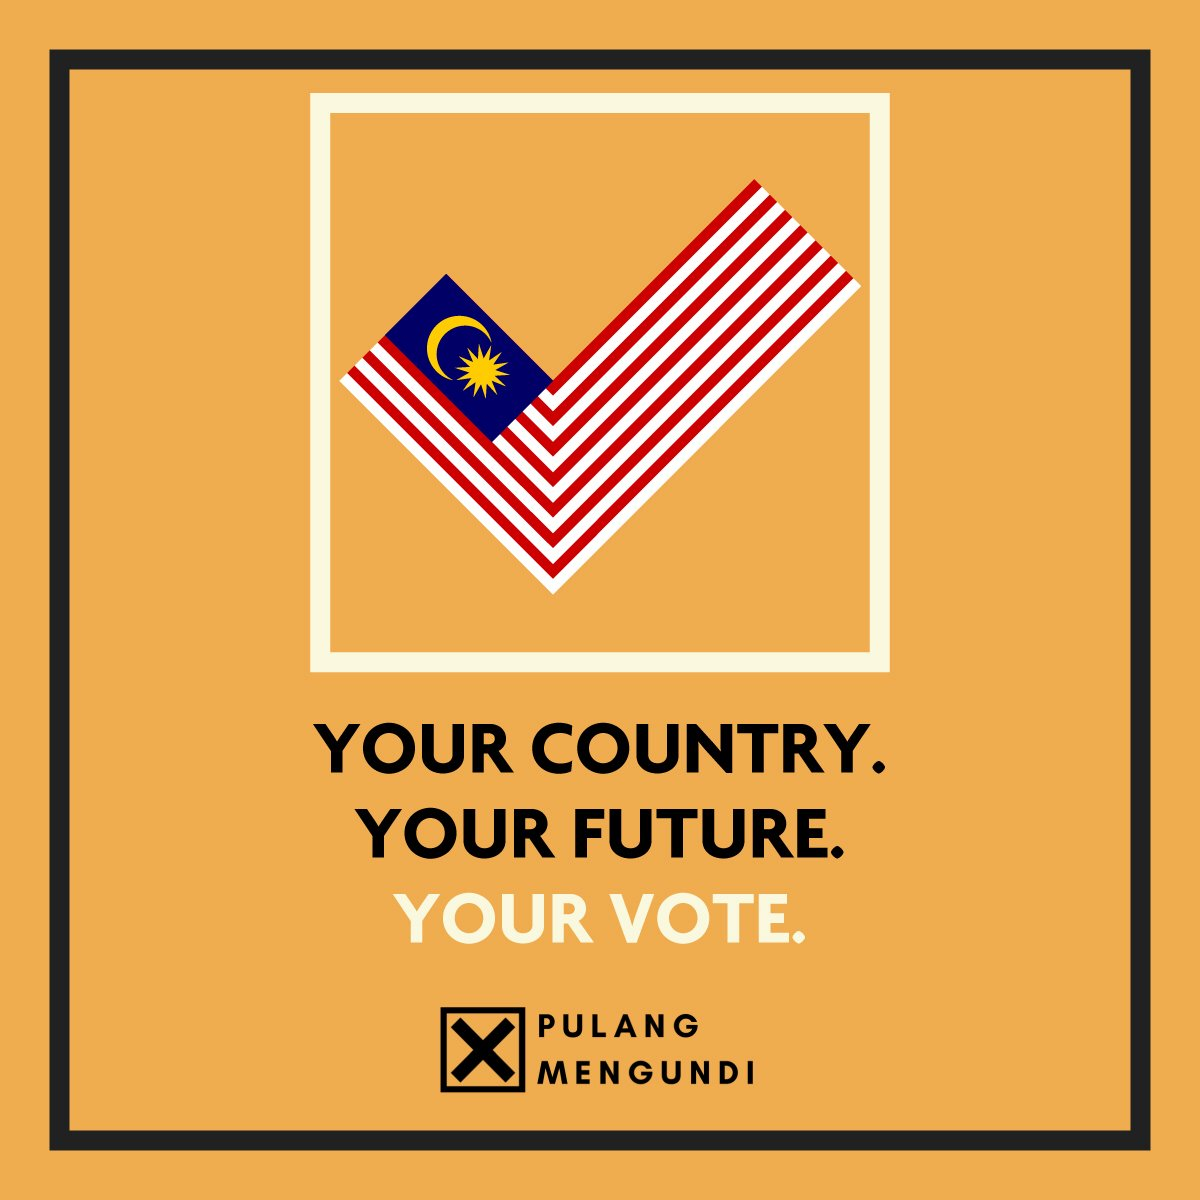 7fe7cb450b Your vote today determines the next 5 years. Every vote counts. Vote  wisely, Malaysia is waiting. P.S. Dress neutral, bring IC!